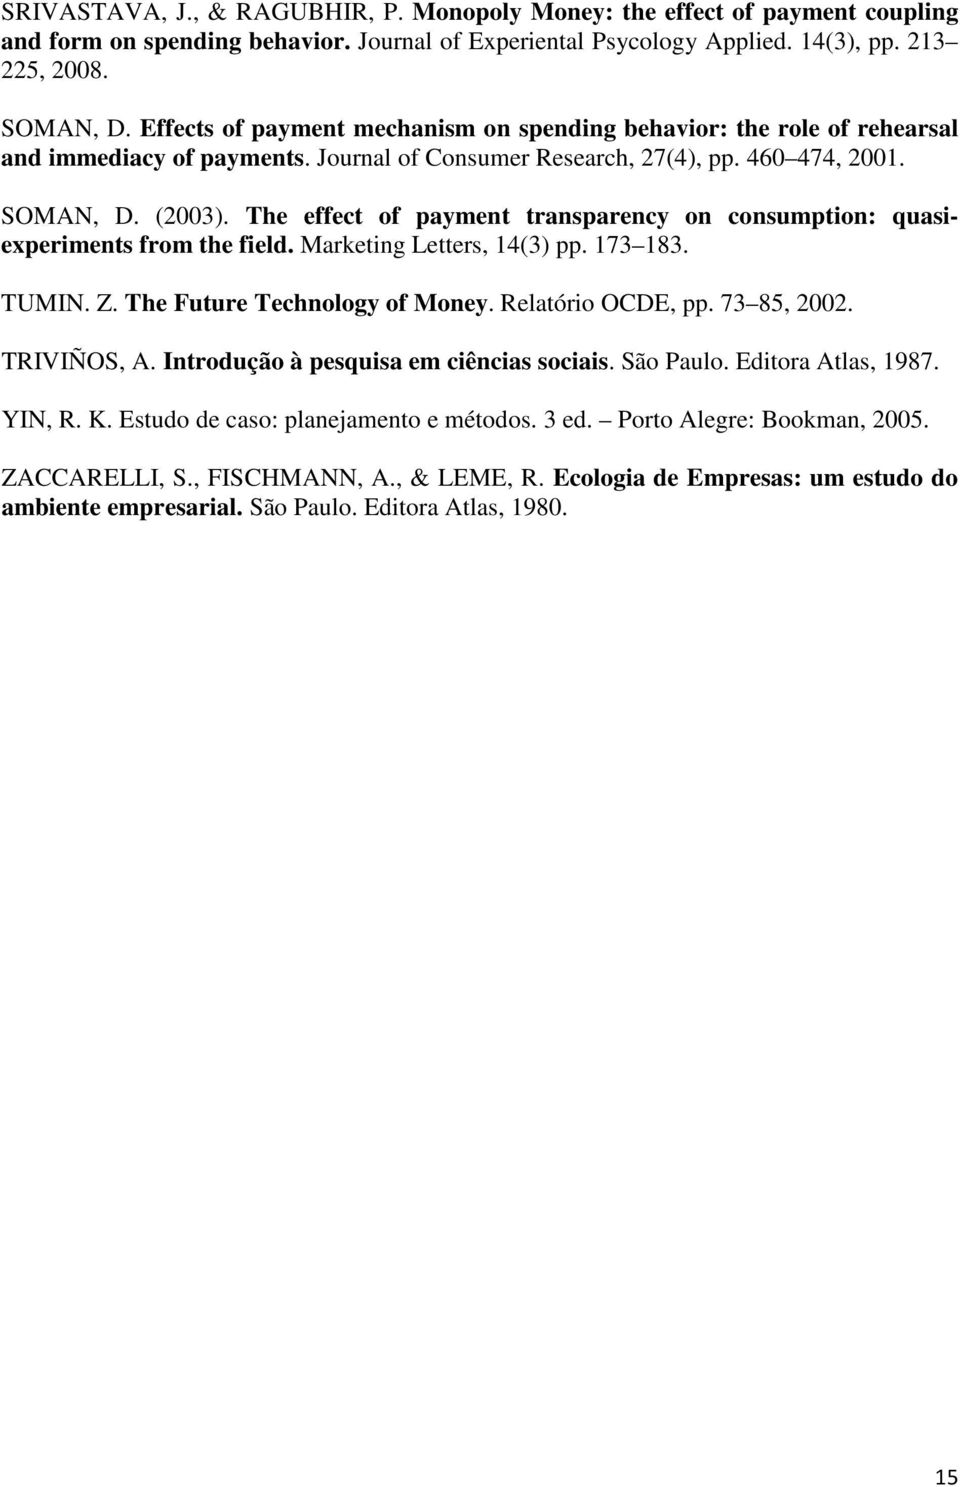 The effect of payment transparency on consumption: quasiexperiments from the field. Marketing Letters, 14(3) pp. 173 183. TUMIN. Z. The Future Technology of Money. Relatório OCDE, pp. 73 85, 2002.